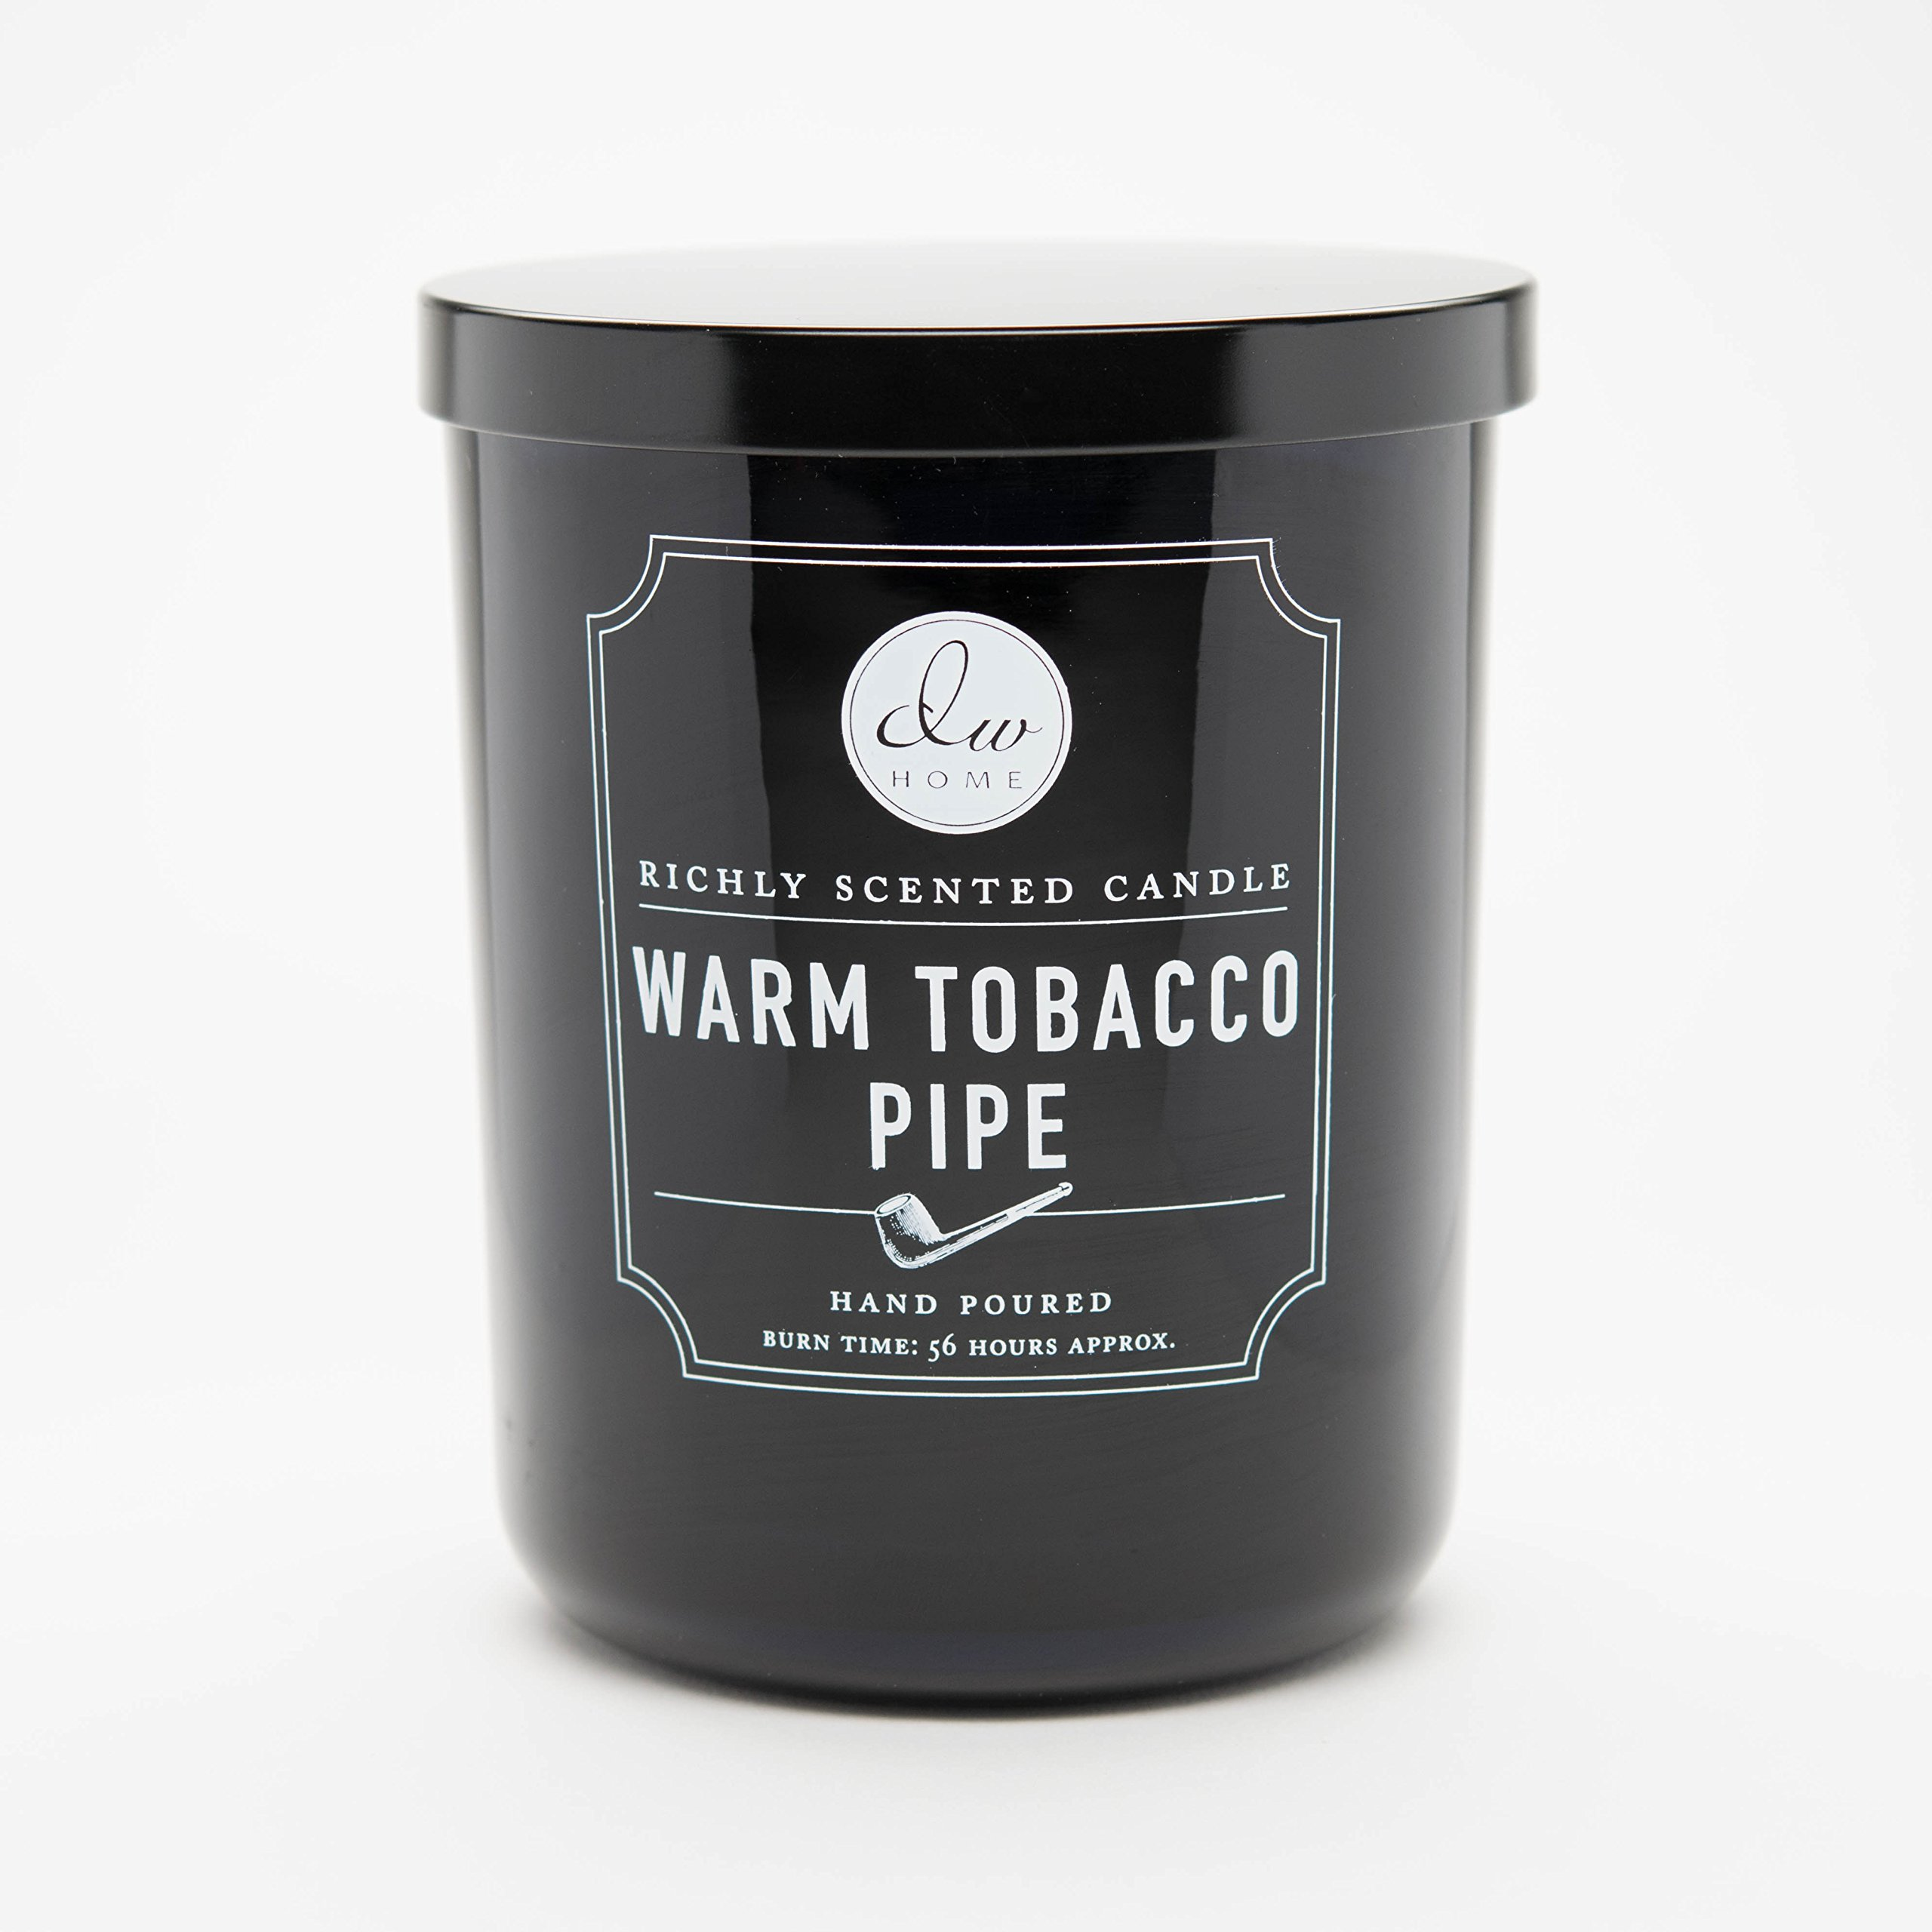 DW Home Large Double Wick Candle, Warm Tobacco Pipe by DW Home (Image #1)